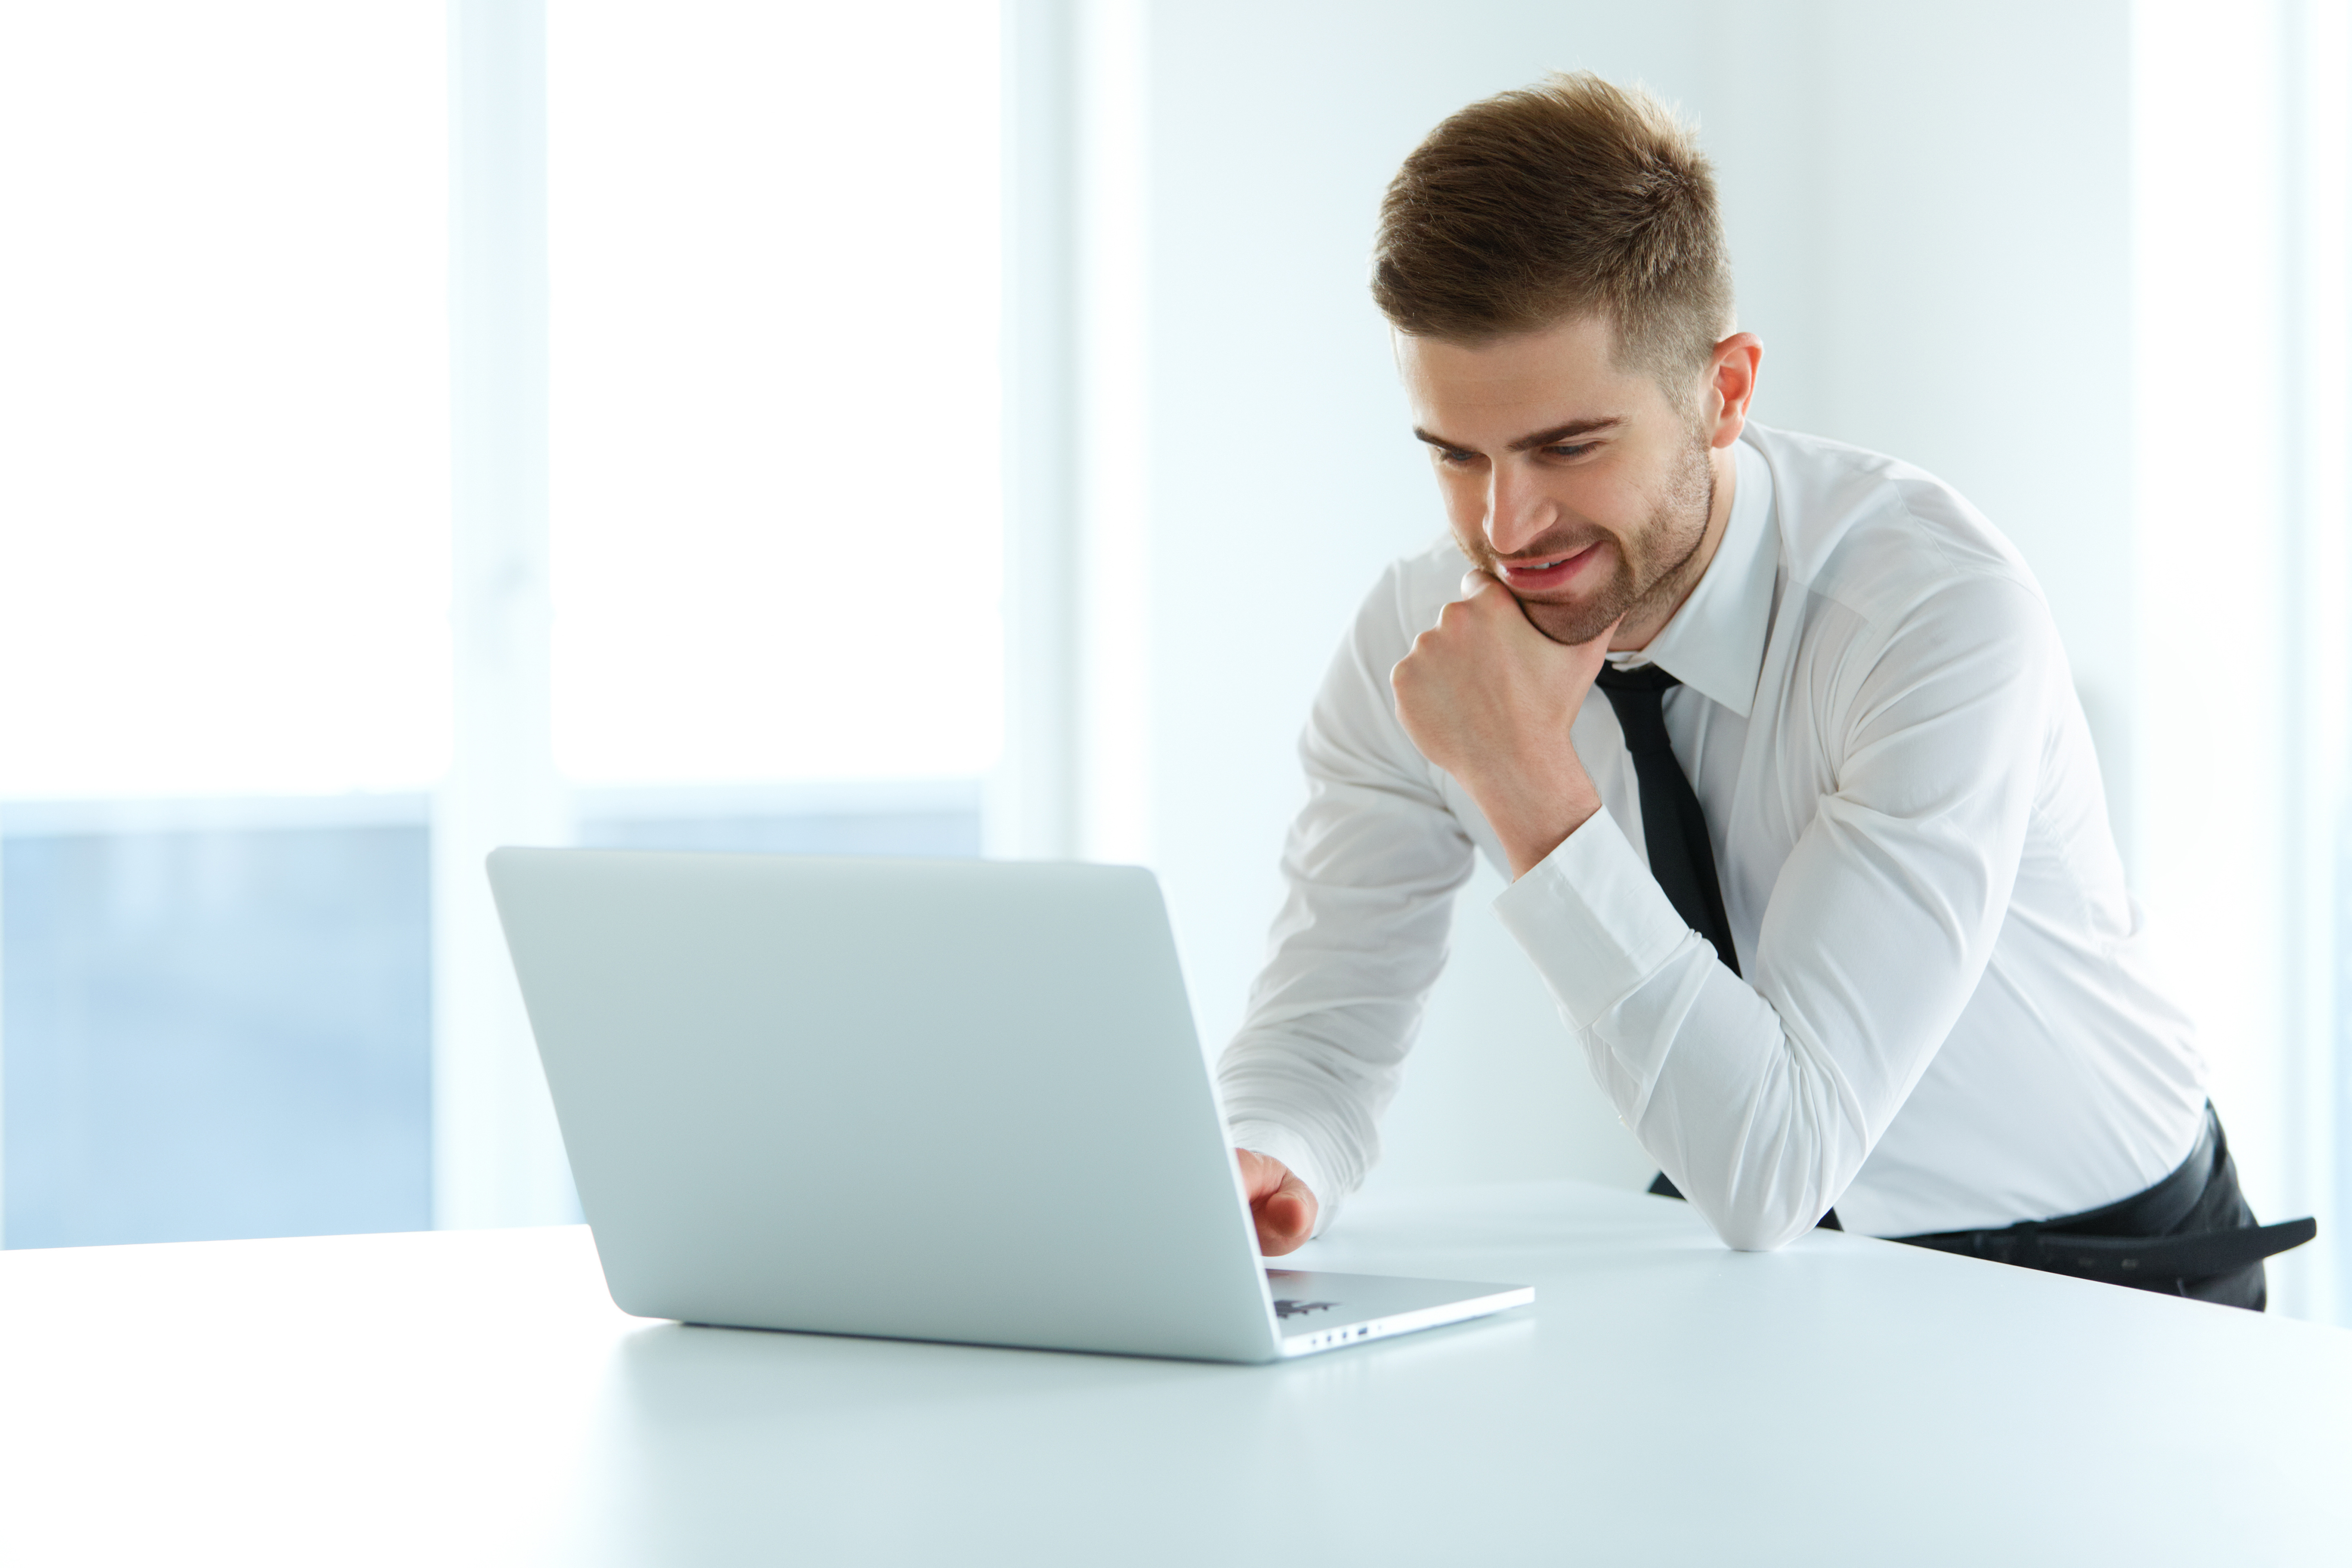 Handsome Businessman Working on Laptop at His Office